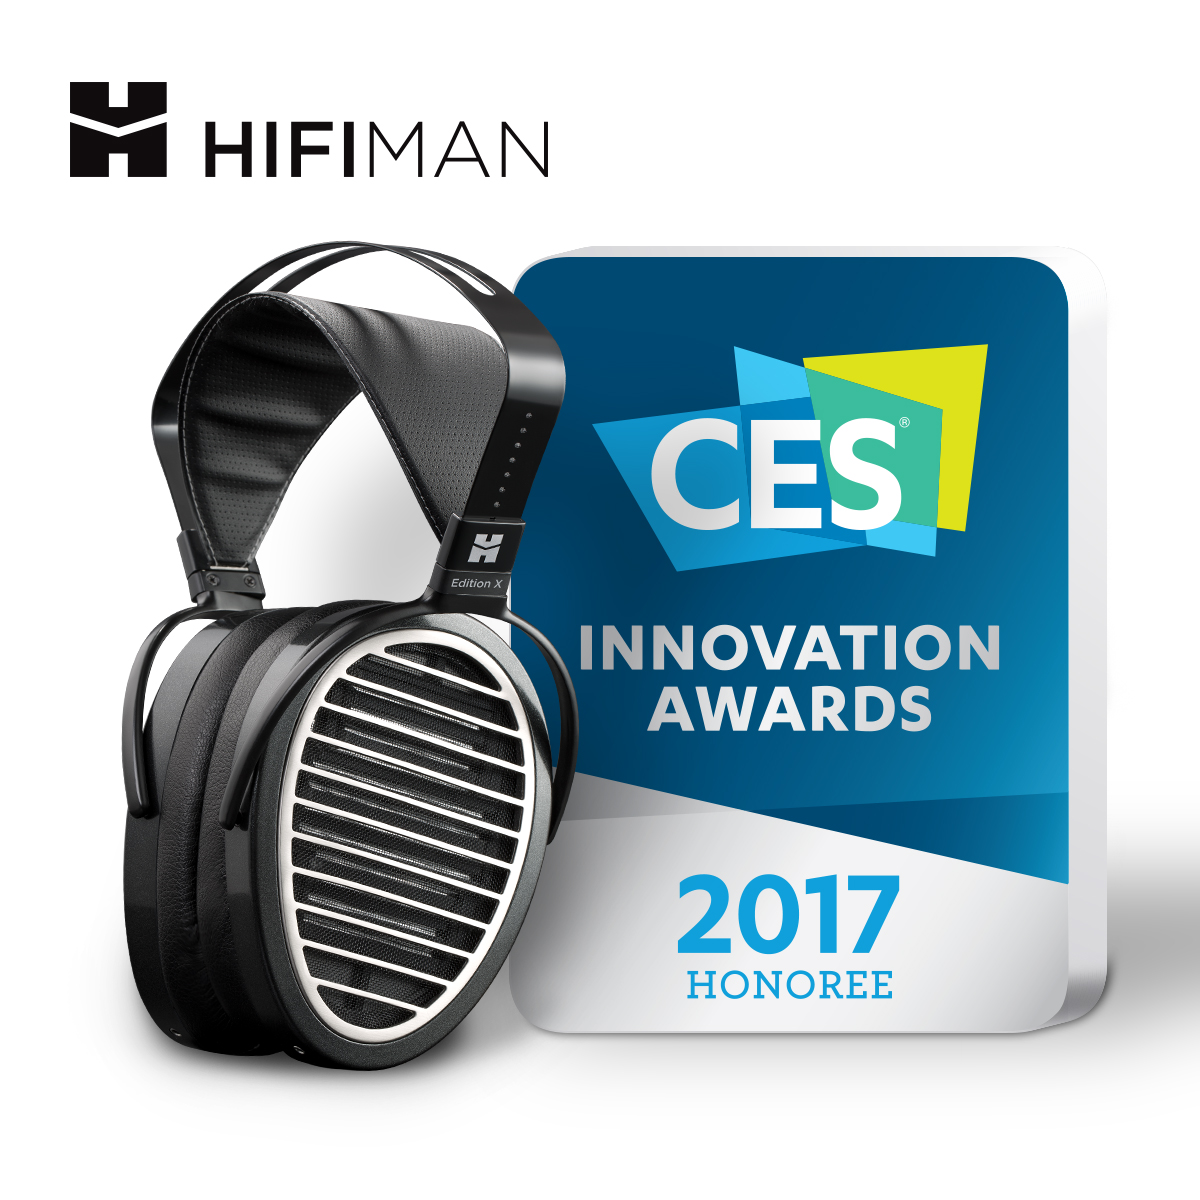 Hifiman Innovation Awards